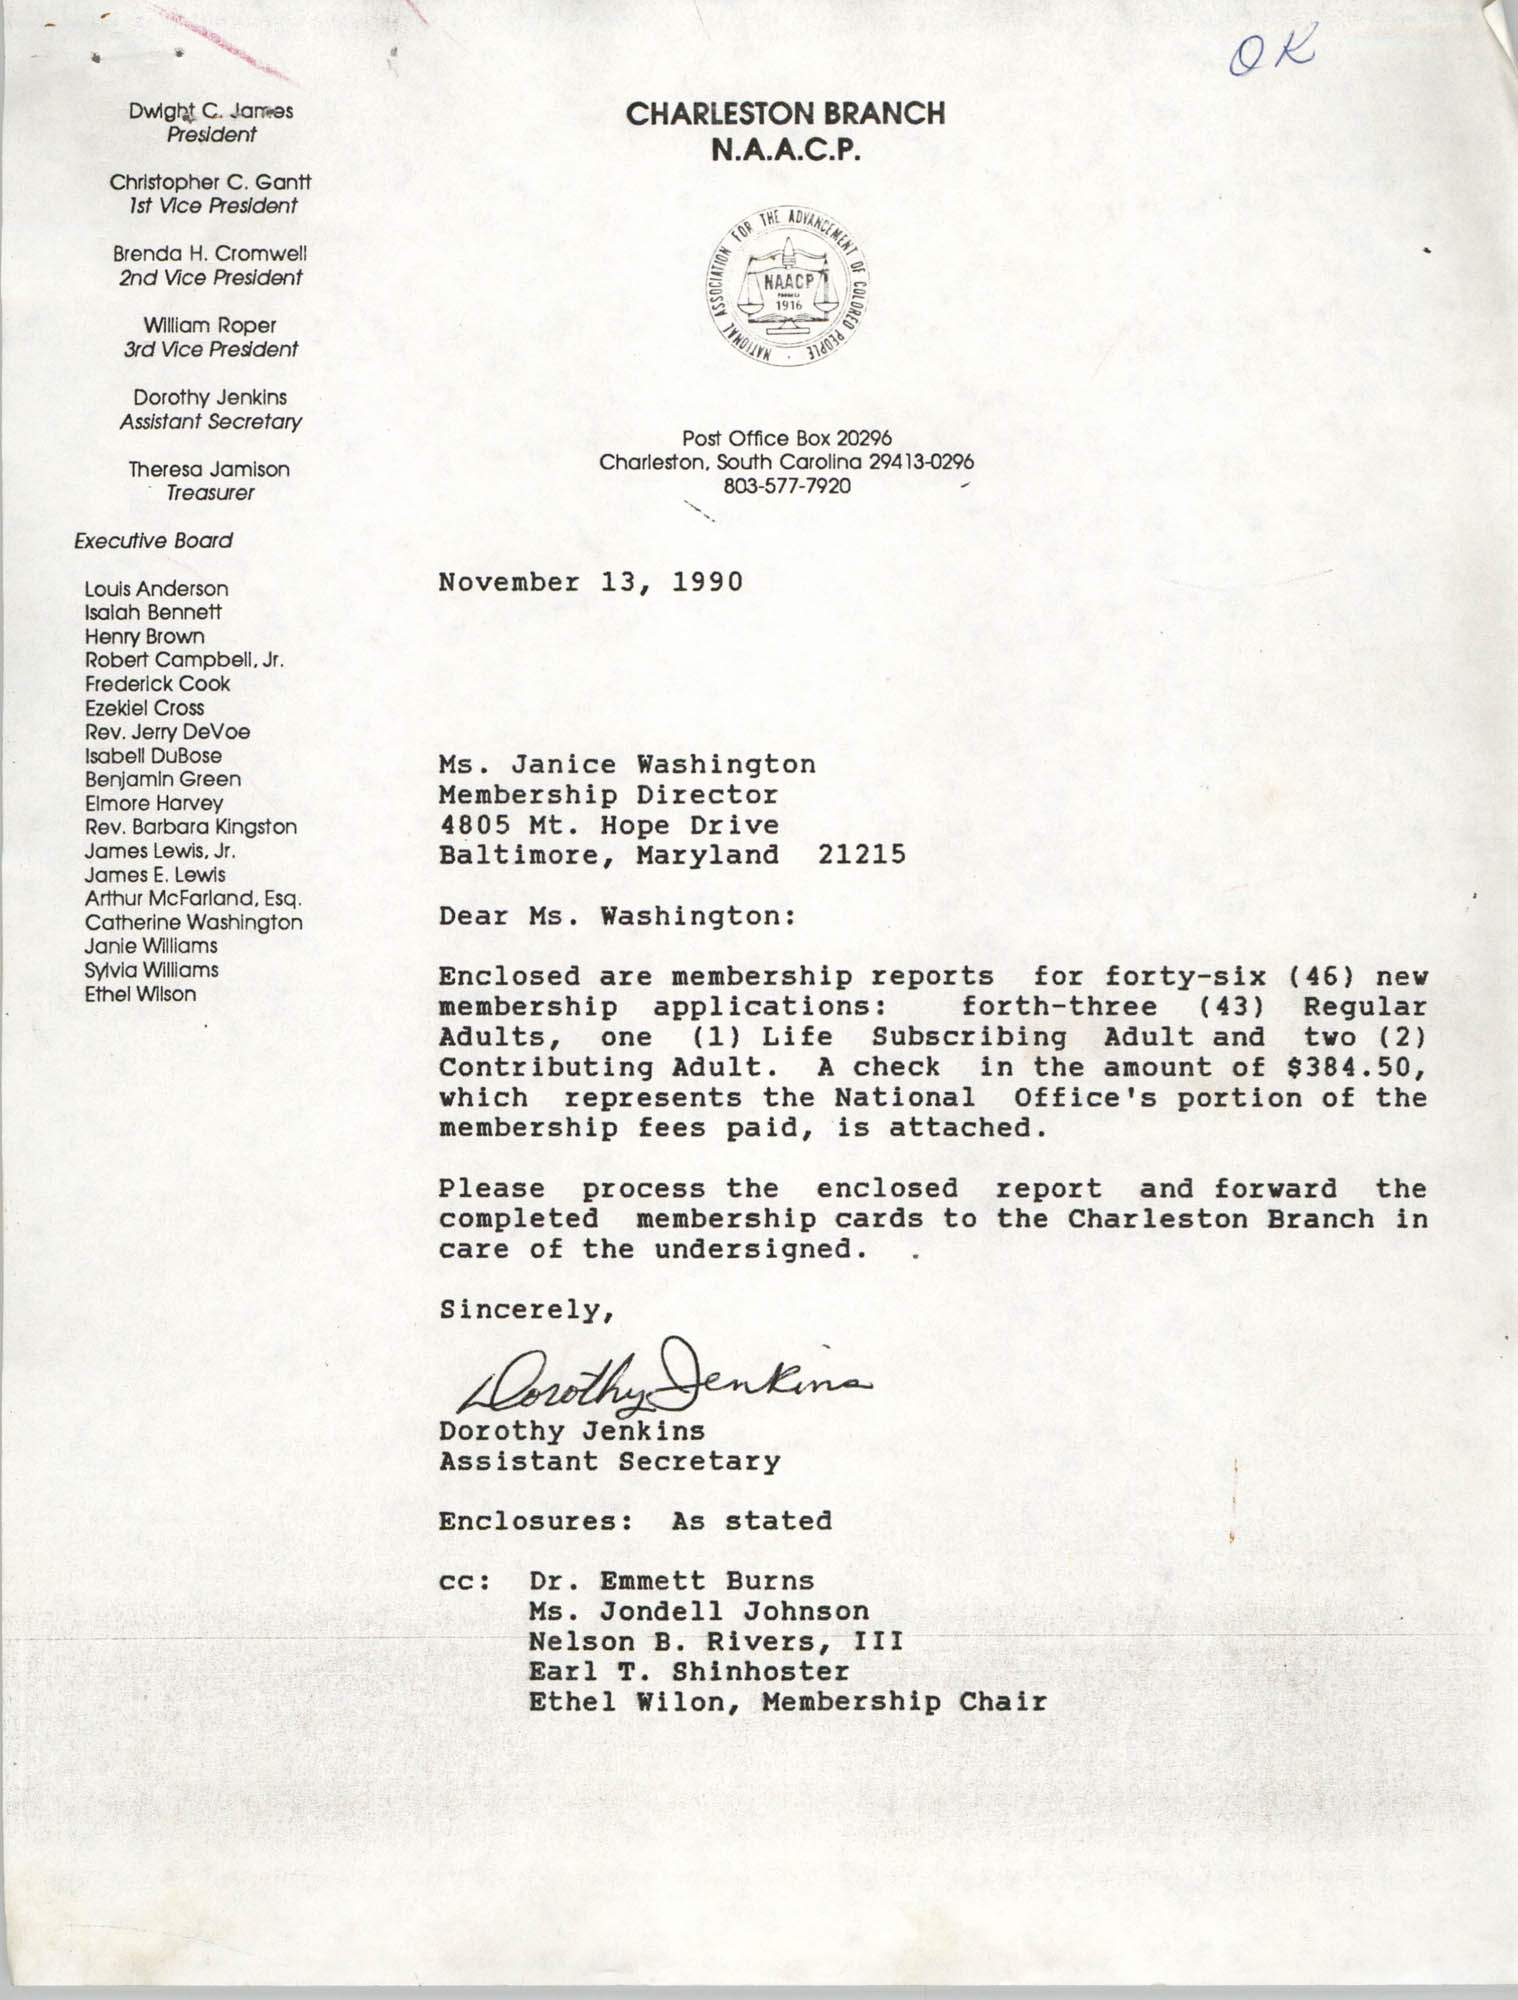 Letter from Dorothy Jenkins to Janice Washington, NAACP, November 13, 1990